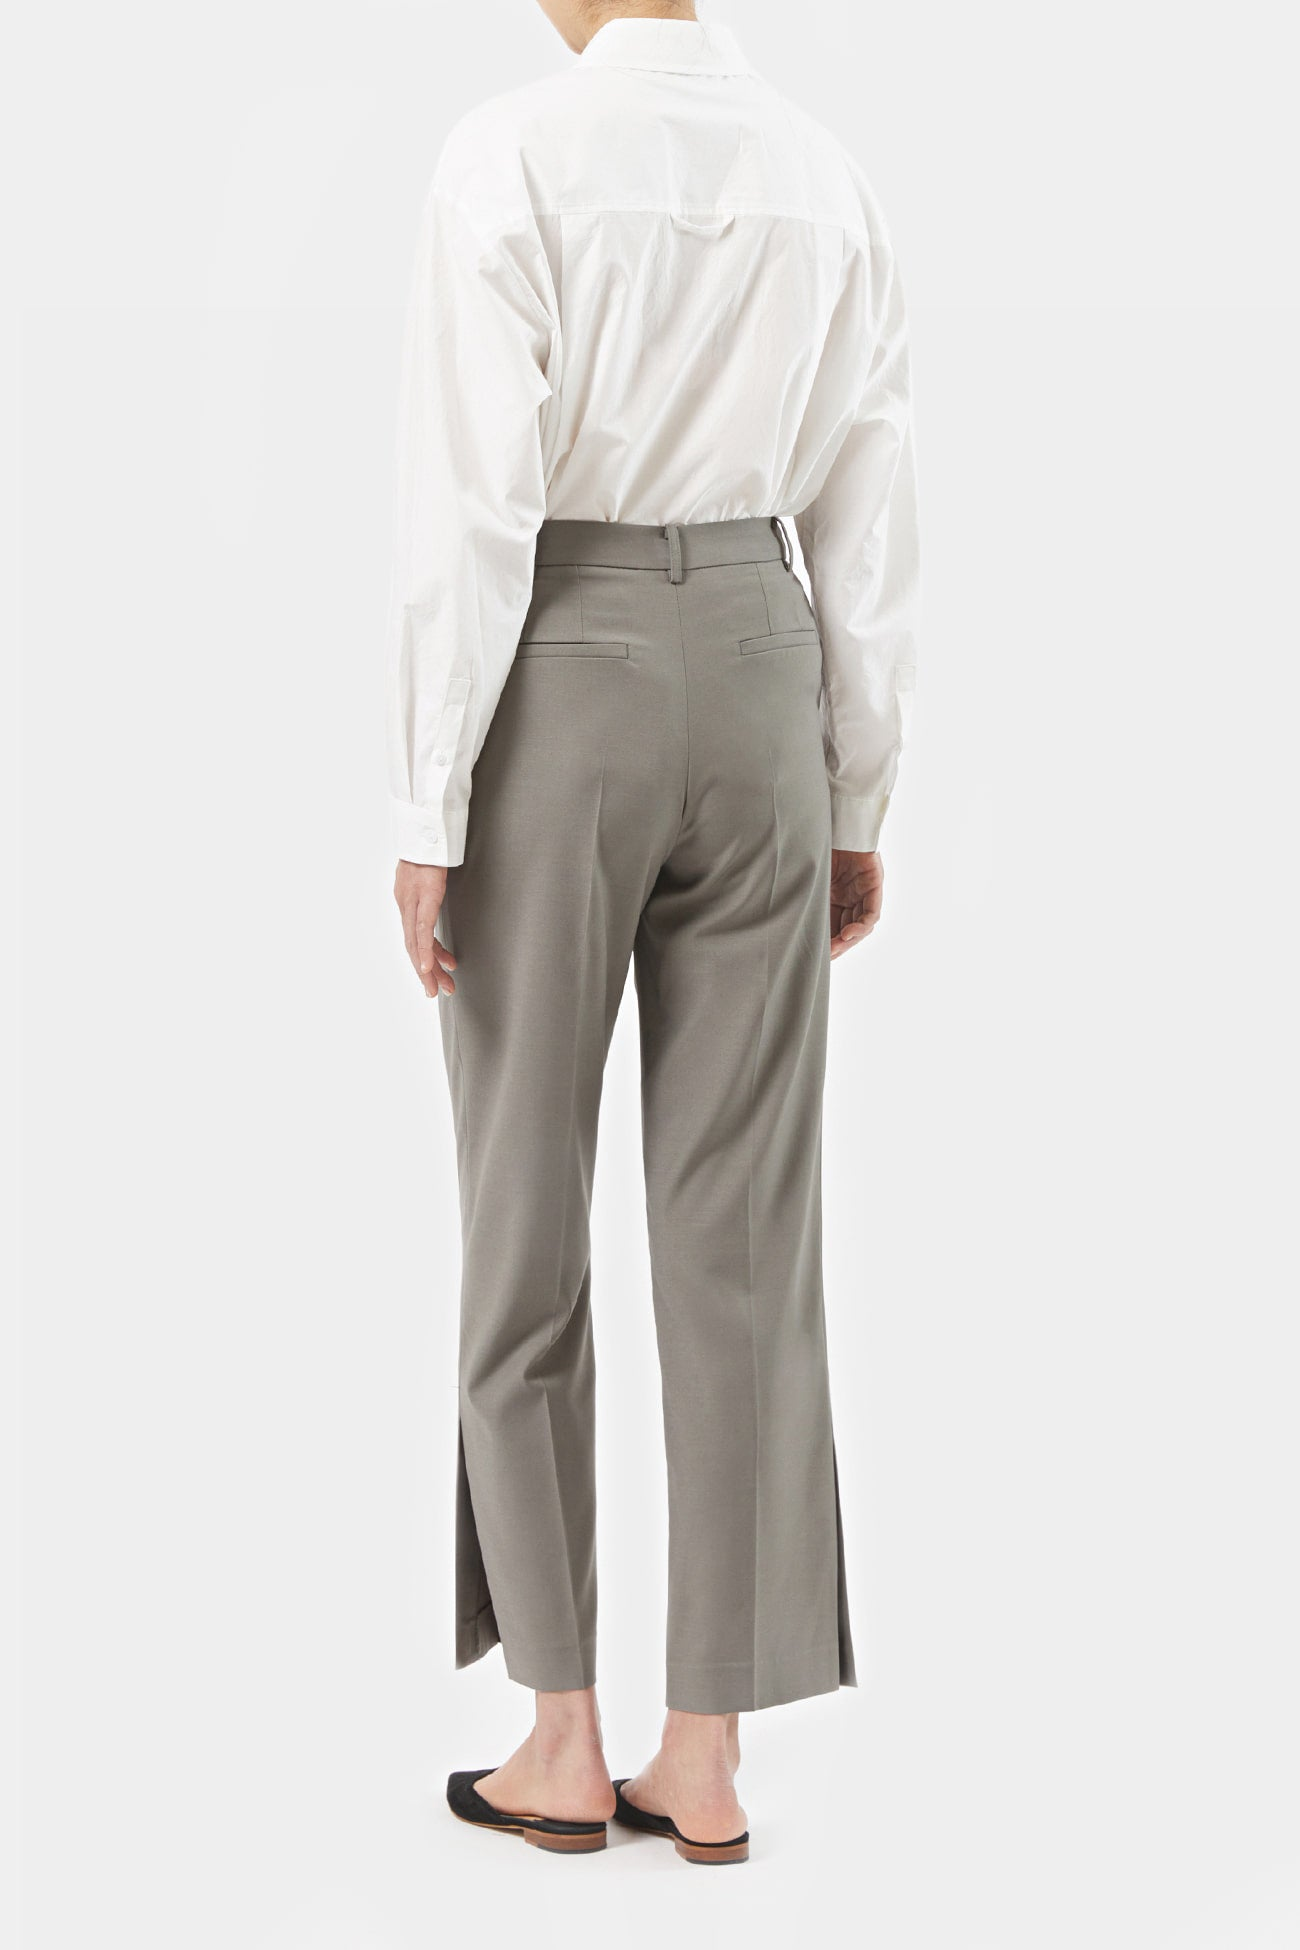 KHAKI KRIS SIDE SLIT PANTS